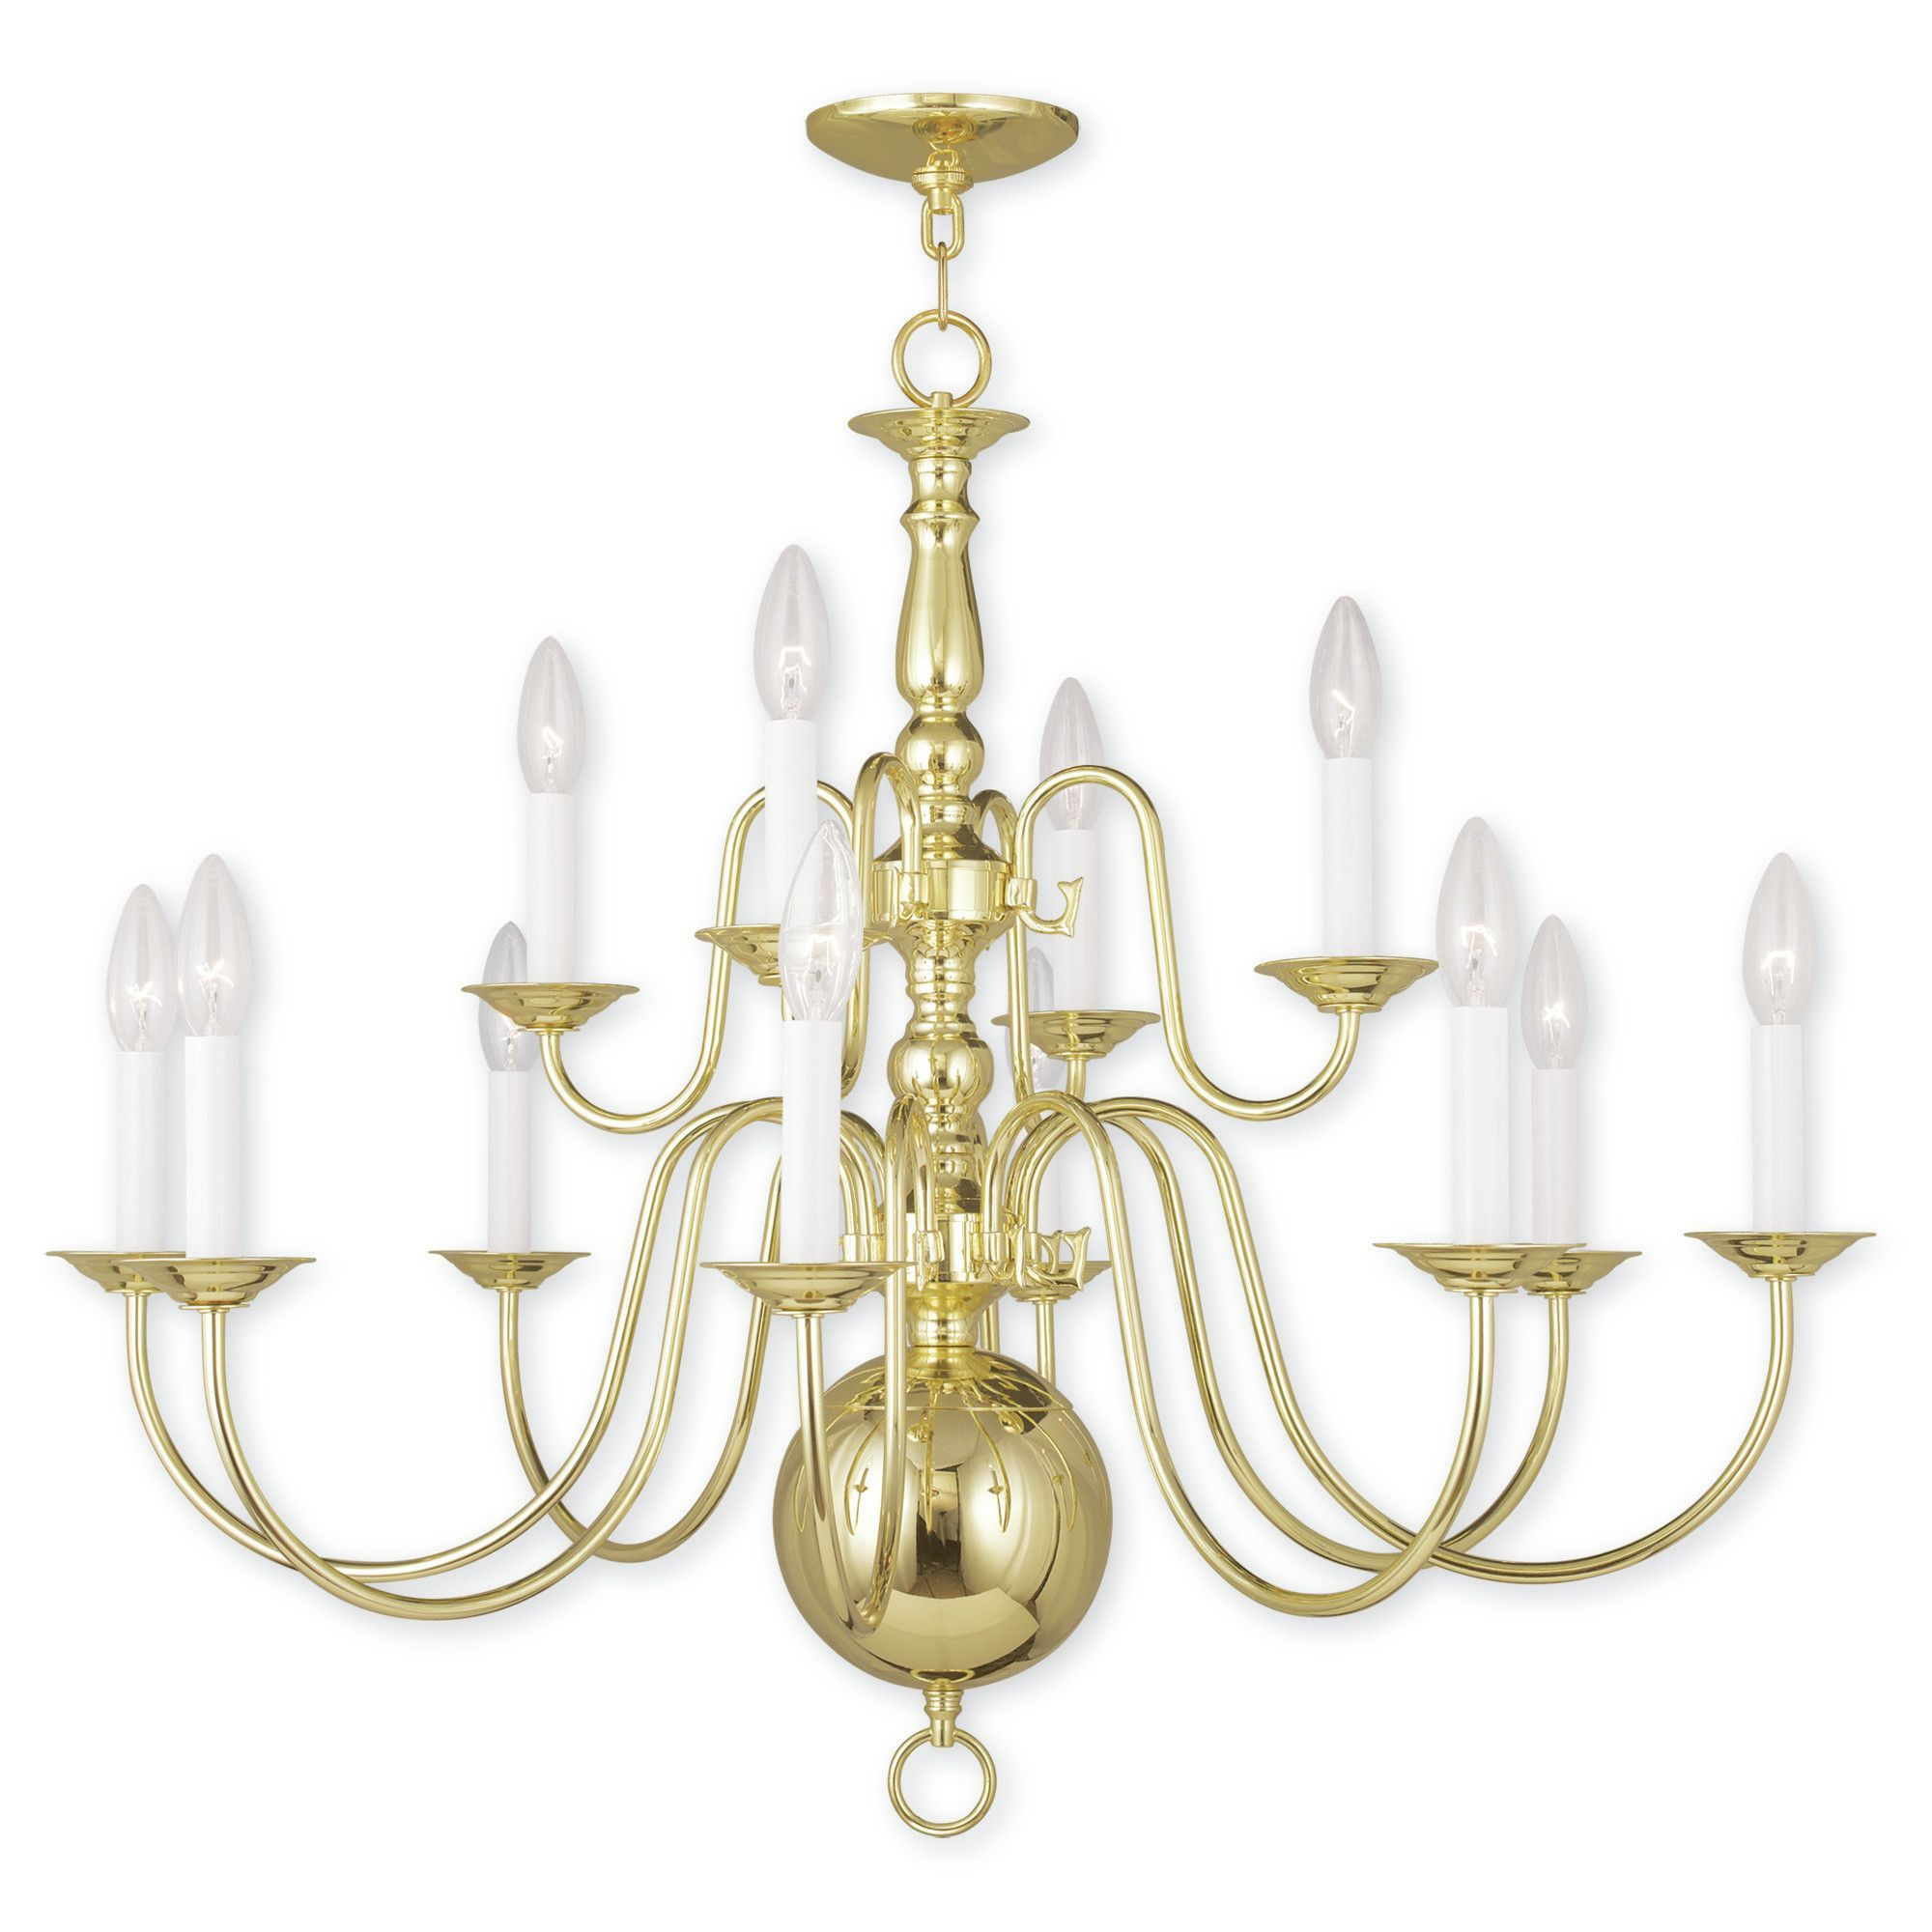 Williamsburgh 12-Light Candle-Style Chandelier